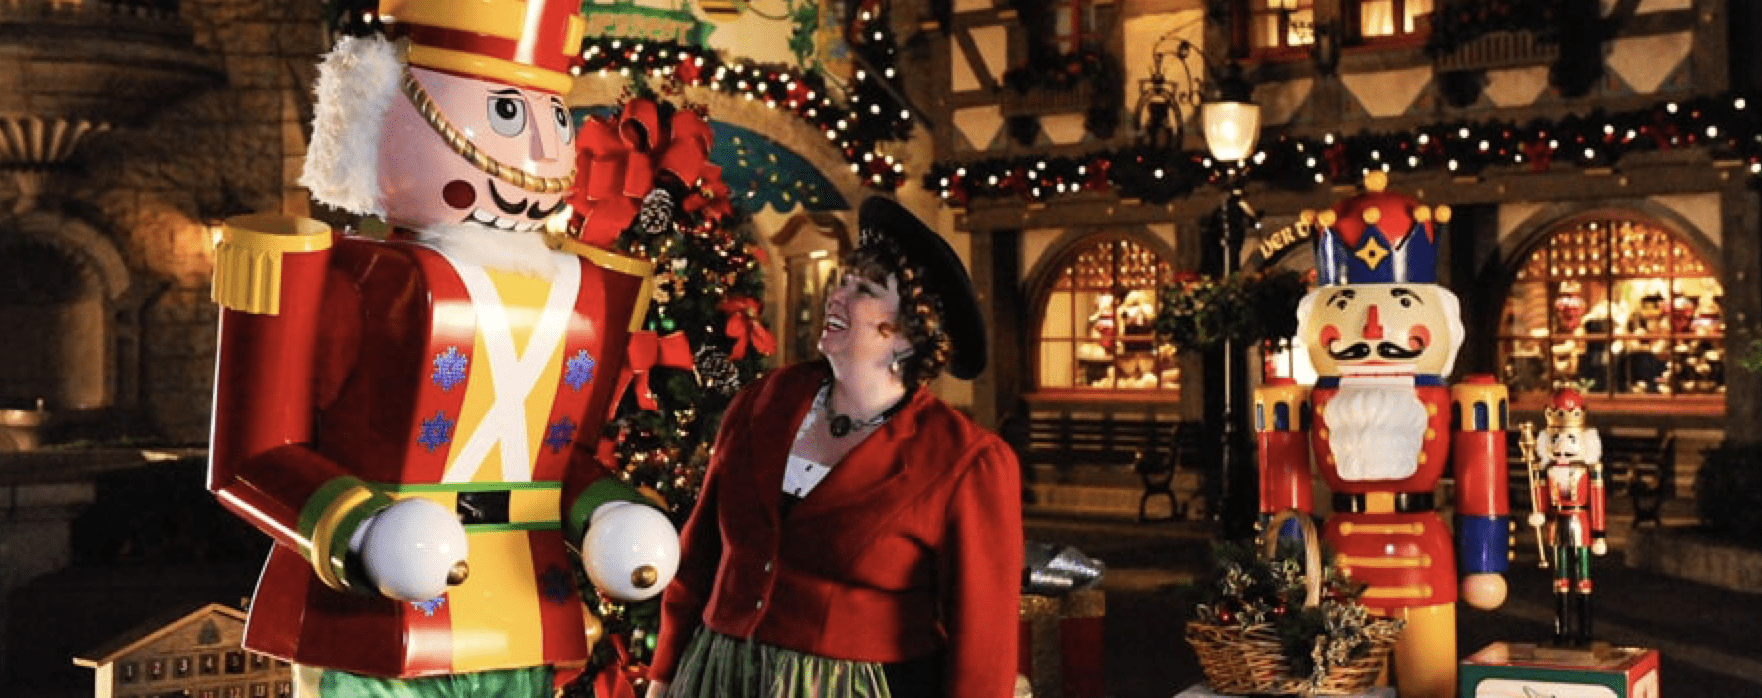 Holidays Around the World to Become Epcot International Festival of the Holidays in 2017